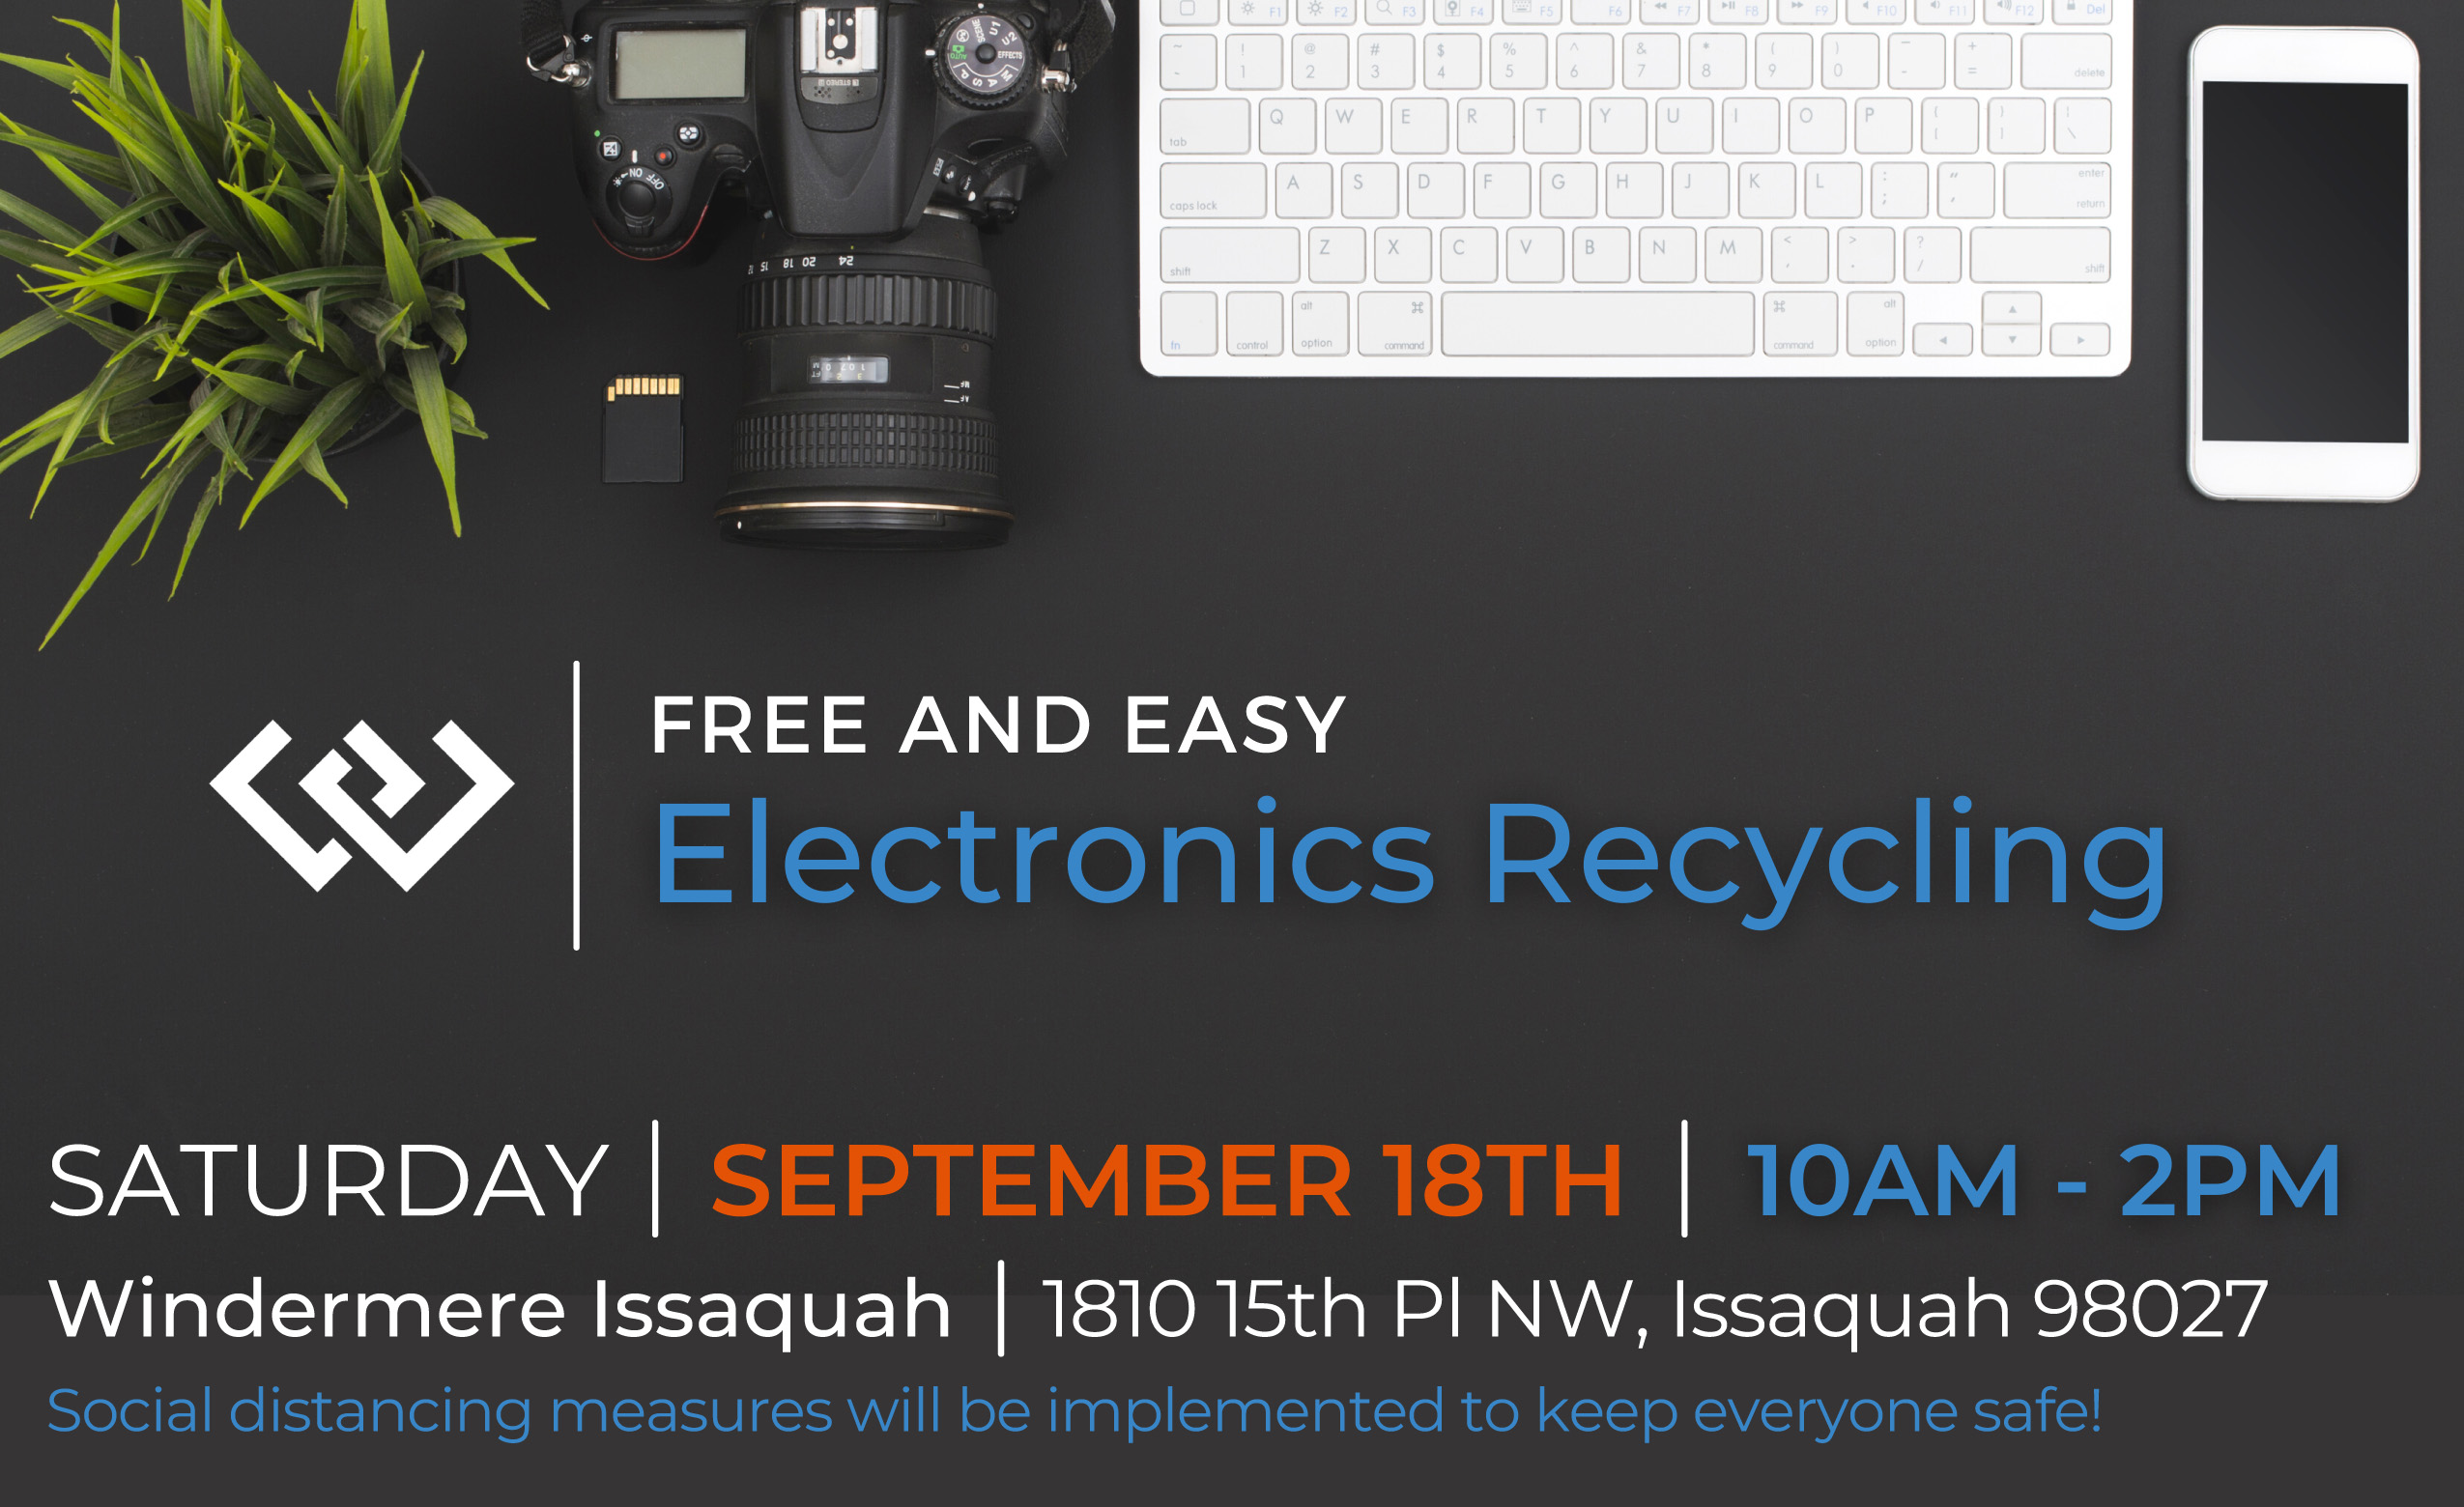 Electronic Recycle Event Flyer 2021